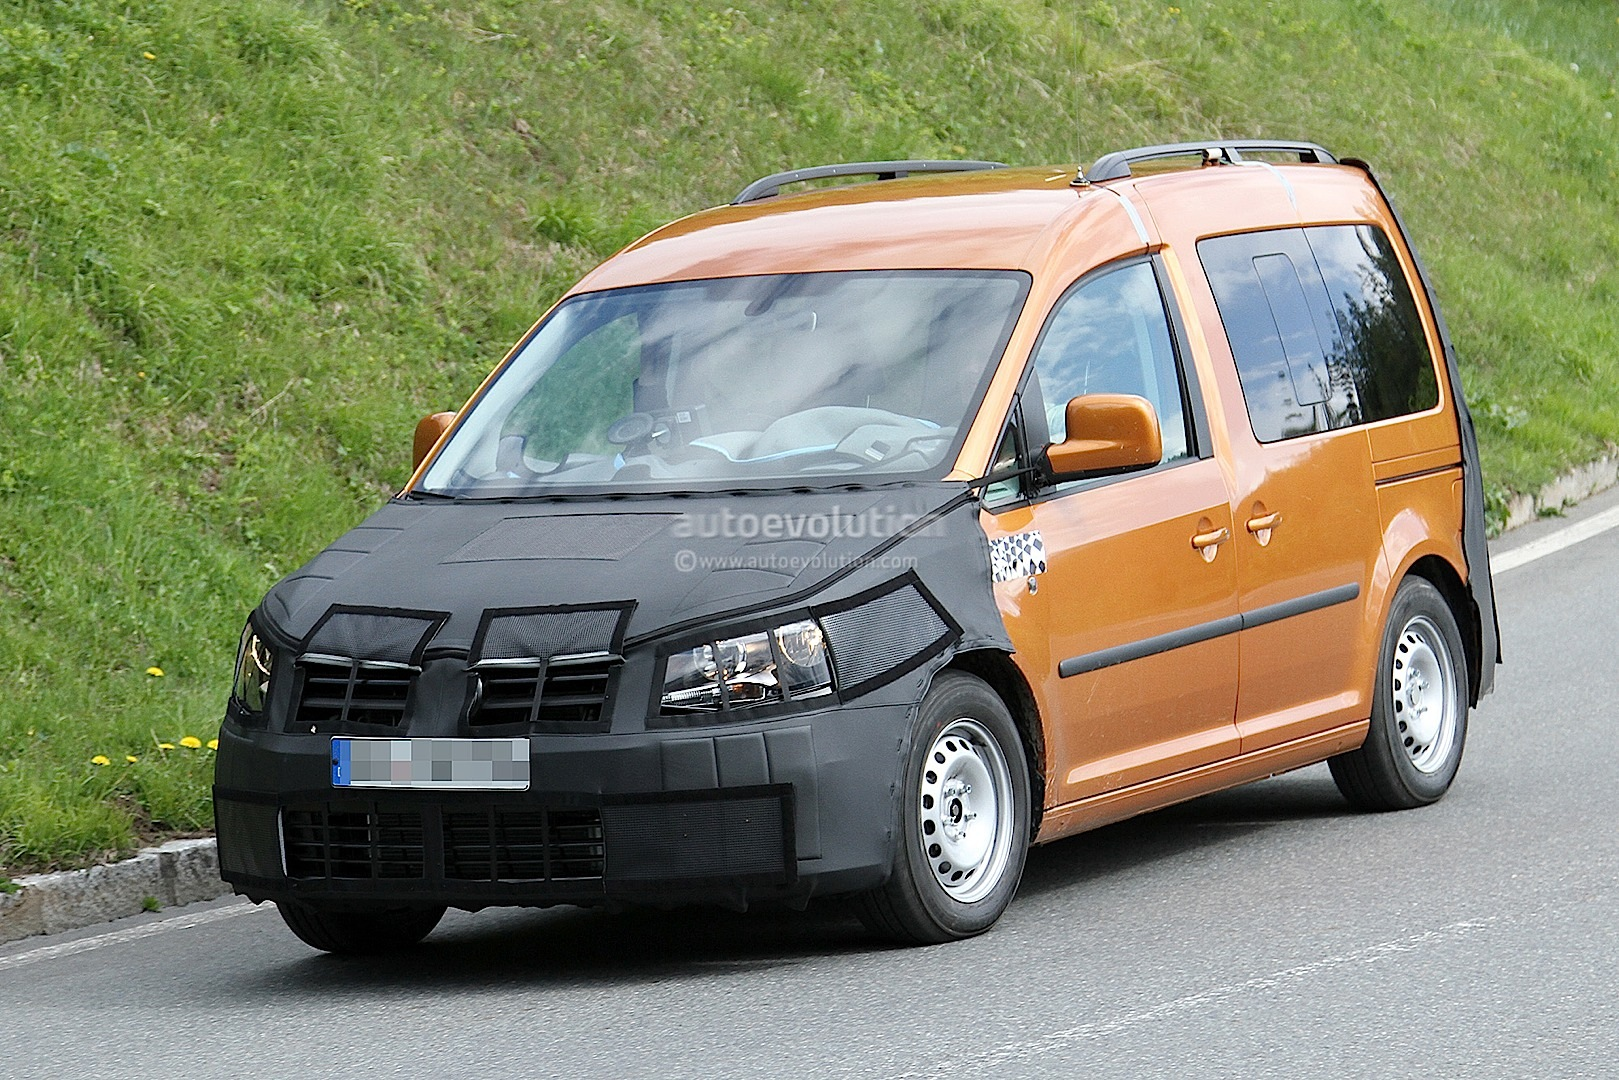 Vw Atlas Interior >> New Volkswagen Caddy Spied Testing for 2015 Launch ...